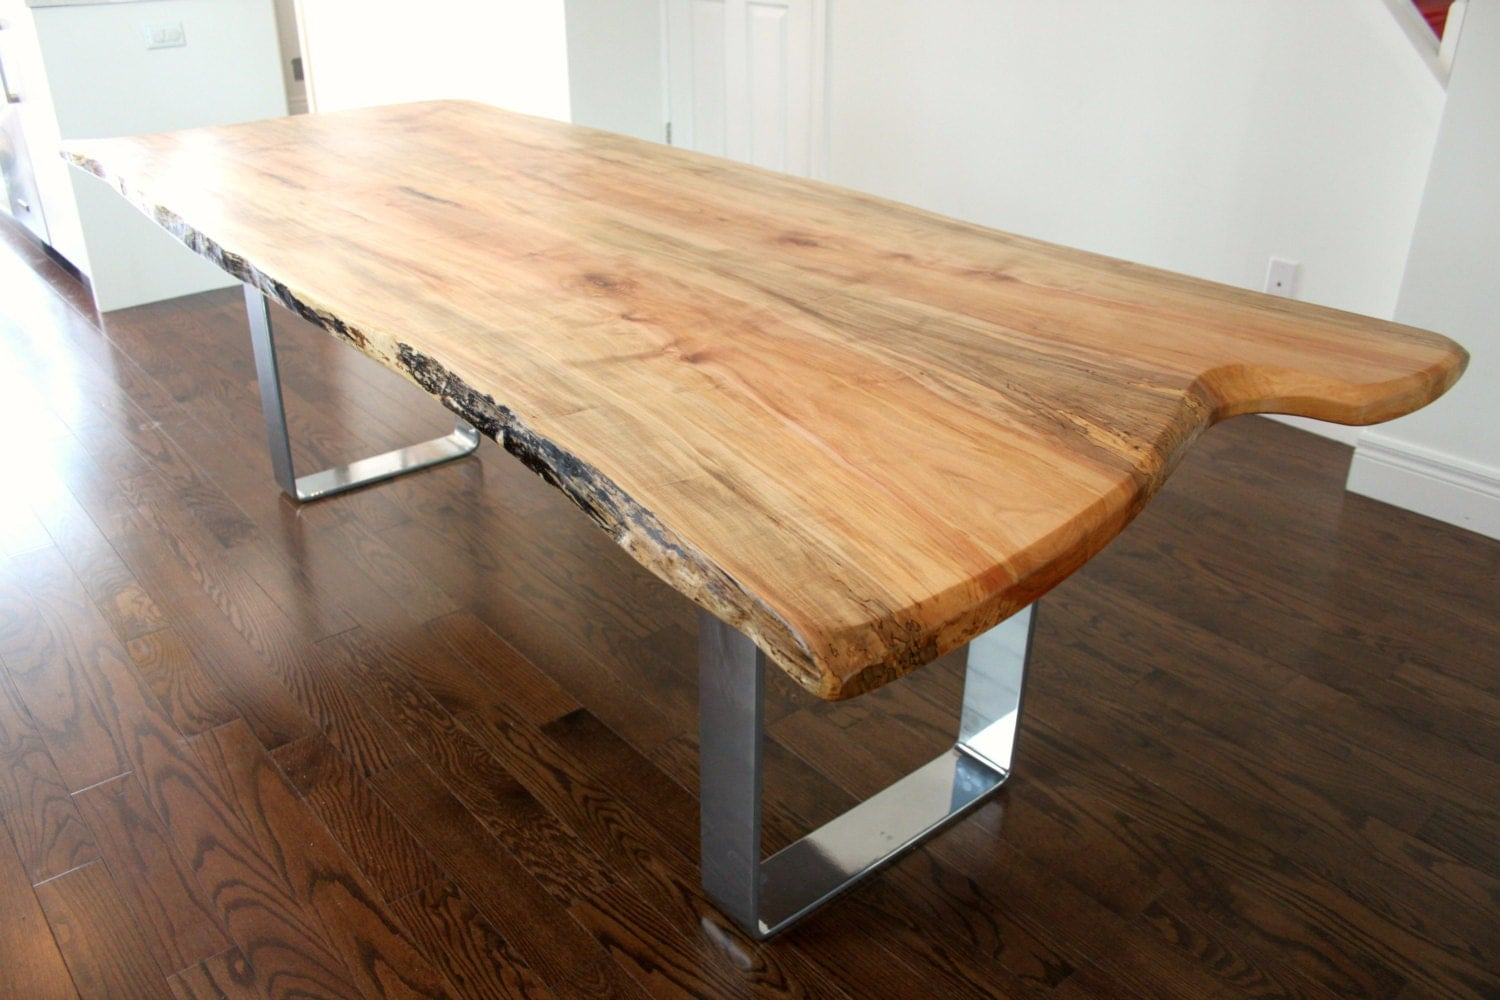 live edge salvaged maple dining table custom metal legs chrome : ilfullxfull584510123ay26 from www.etsy.com size 1500 x 1000 jpeg 268kB